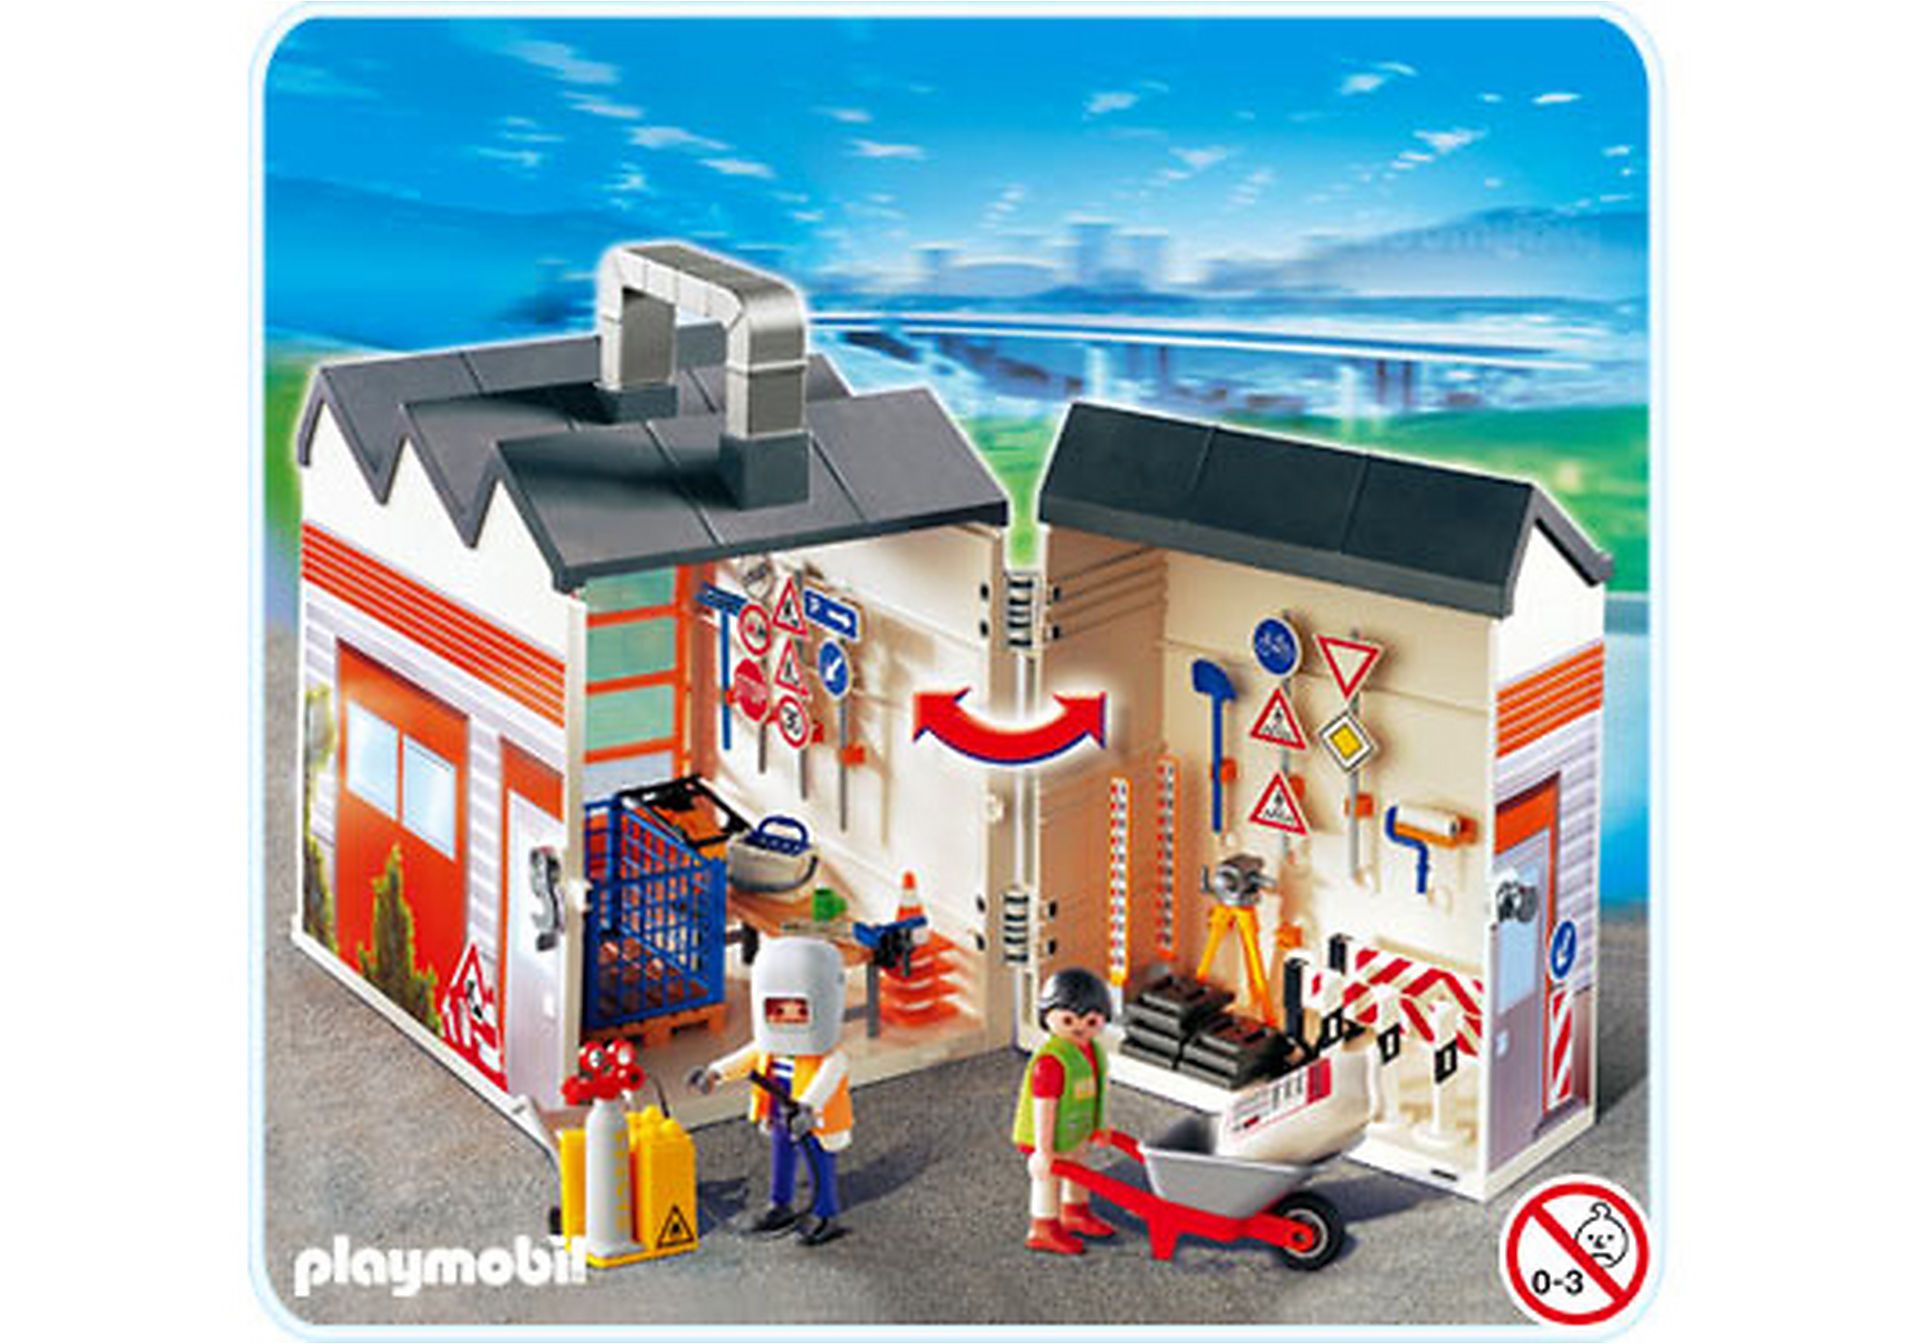 http://media.playmobil.com/i/playmobil/4043-A_product_detail/Atelier de chantier transportable